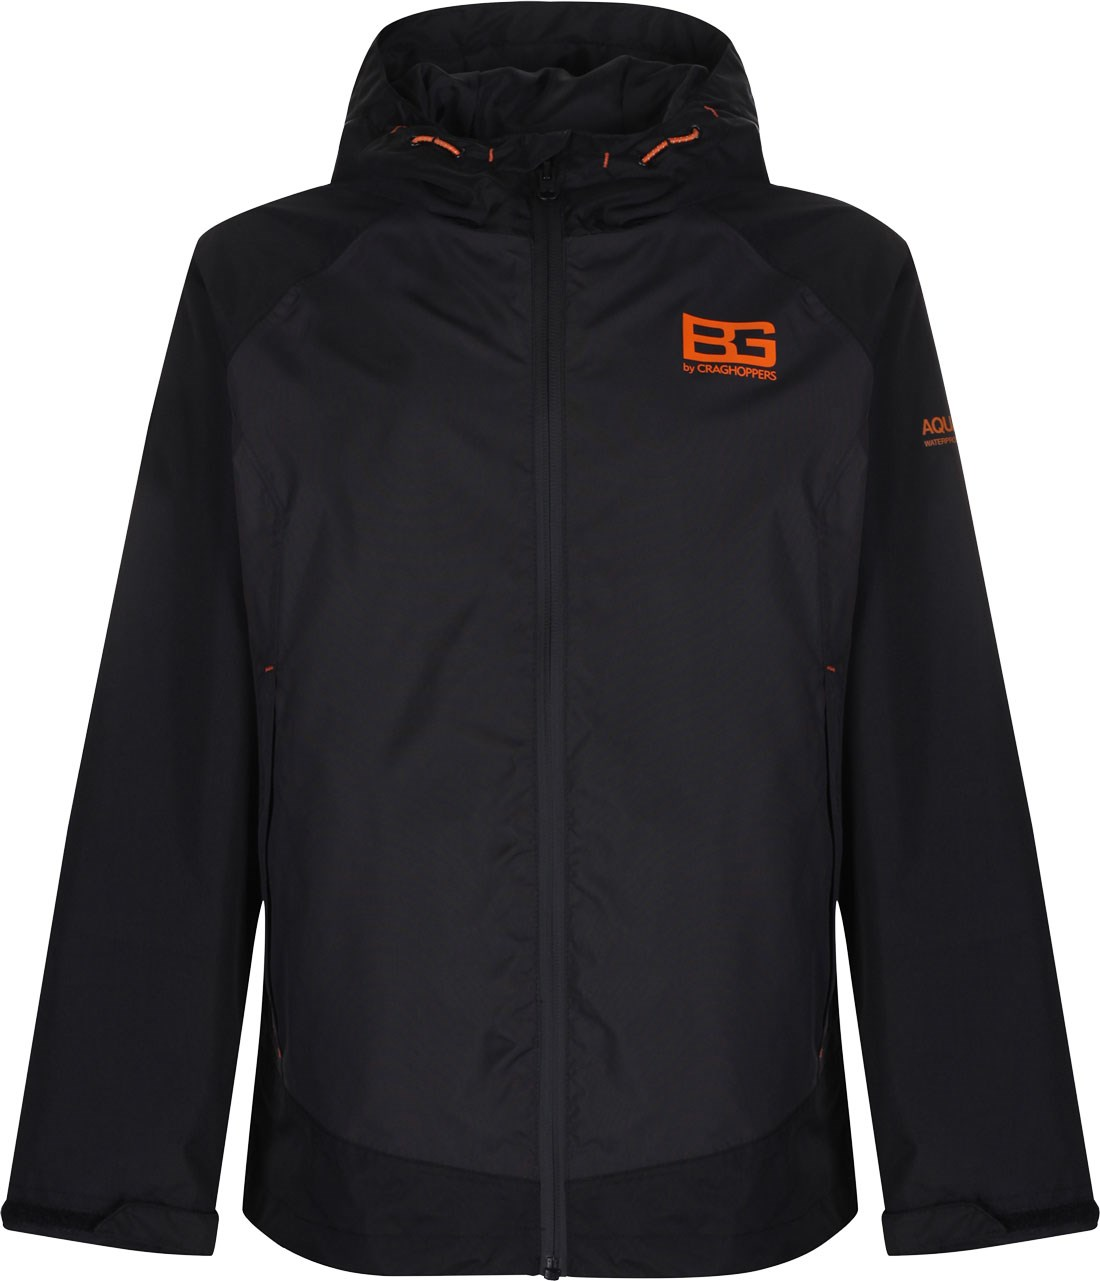 Bear Grylls by Craghoppers Bear Kids Core Waterproof Jacket | GO ...